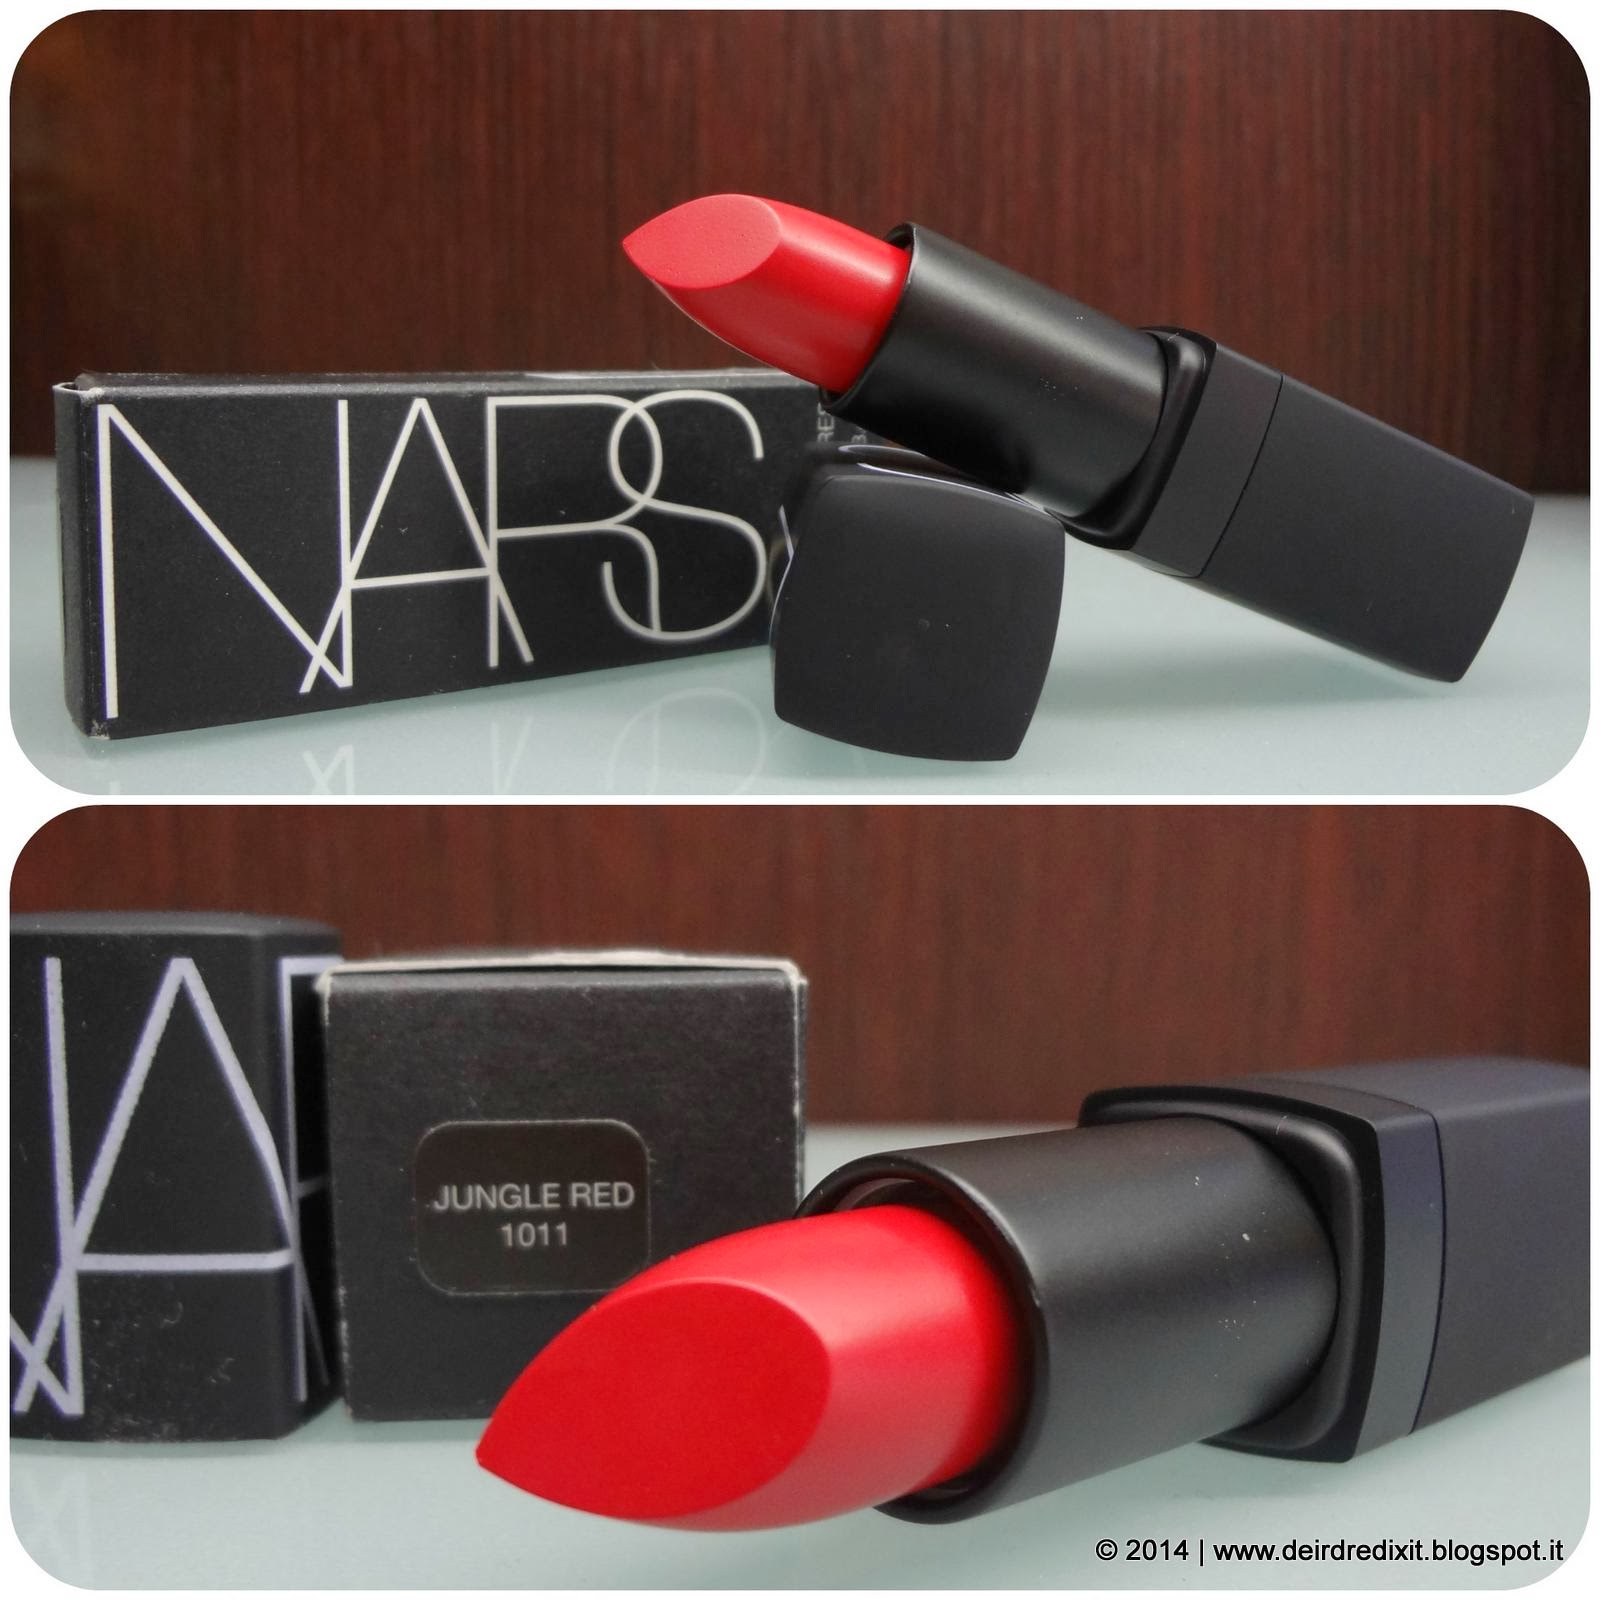 Nars Jungle Red